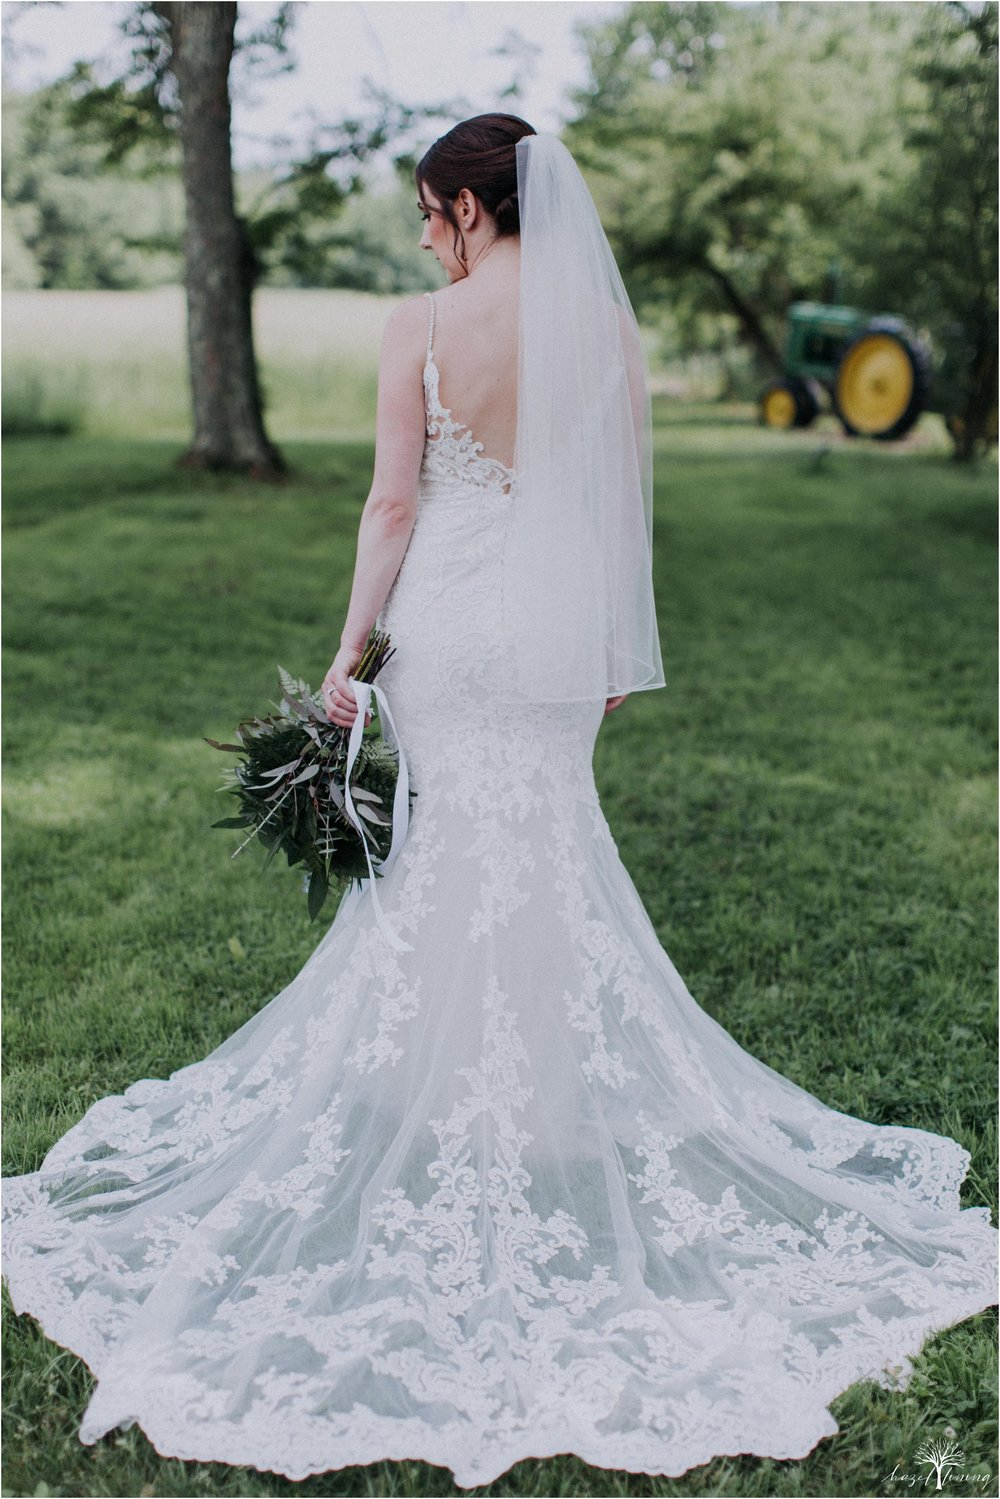 hazel-lining-travel-wedding-elopement-photography-lisa-landon-shoemaker-the-farm-bakery-and-events-bucks-county-quakertown-pennsylvania-summer-country-outdoor-farm-wedding_0020.jpg